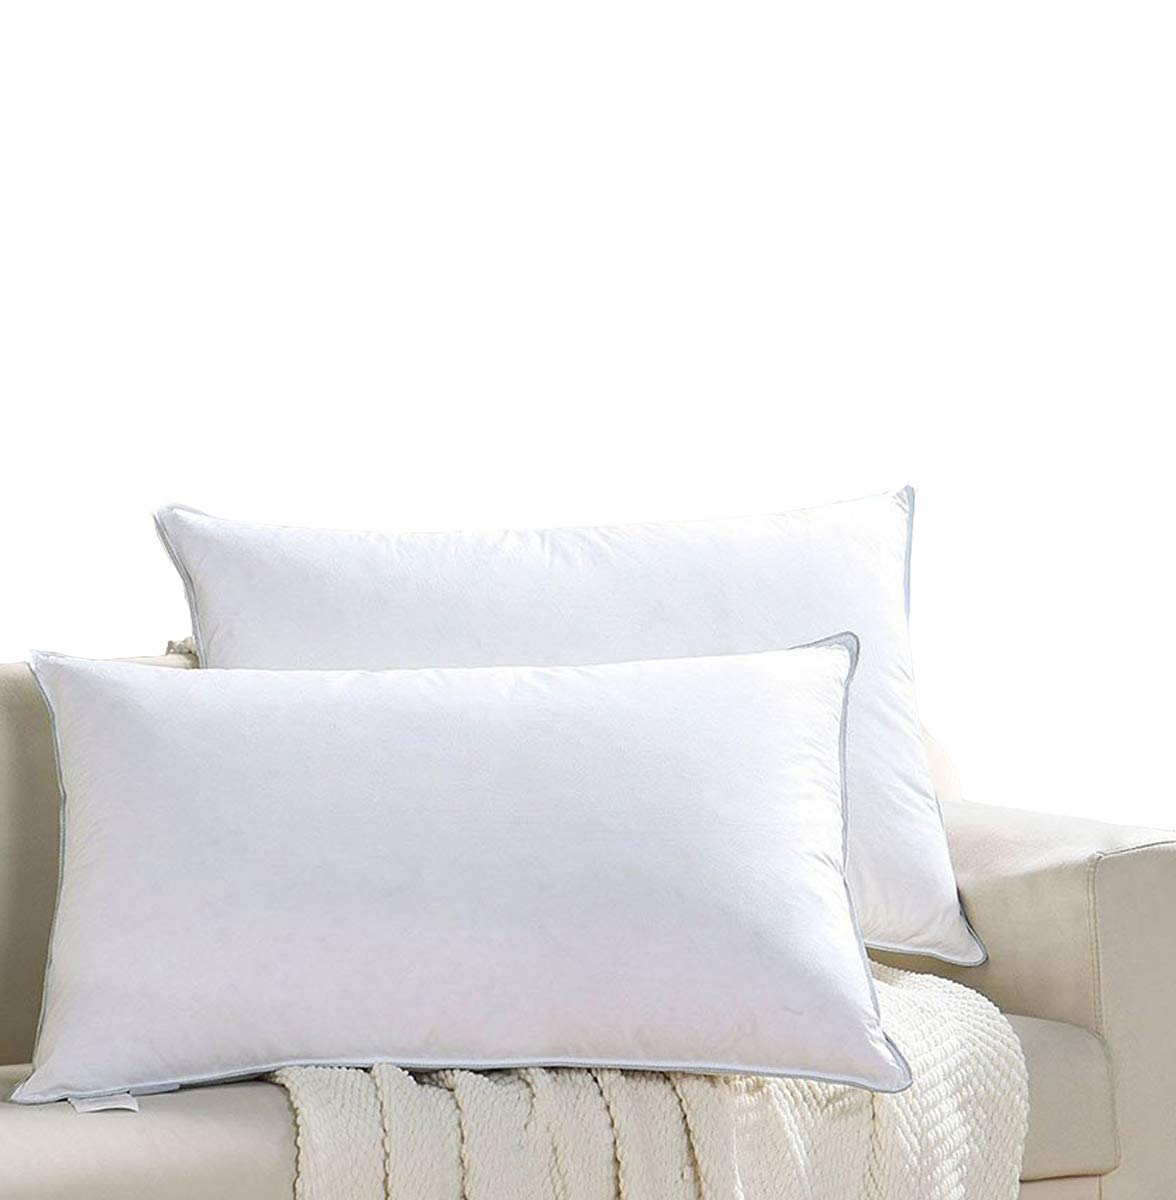 Coozii Goose down pillow(2-pack,Queen,Soft) 100% Egyptian Cotton Cover,1200 Thread Count,Bed pillows for Sleeping